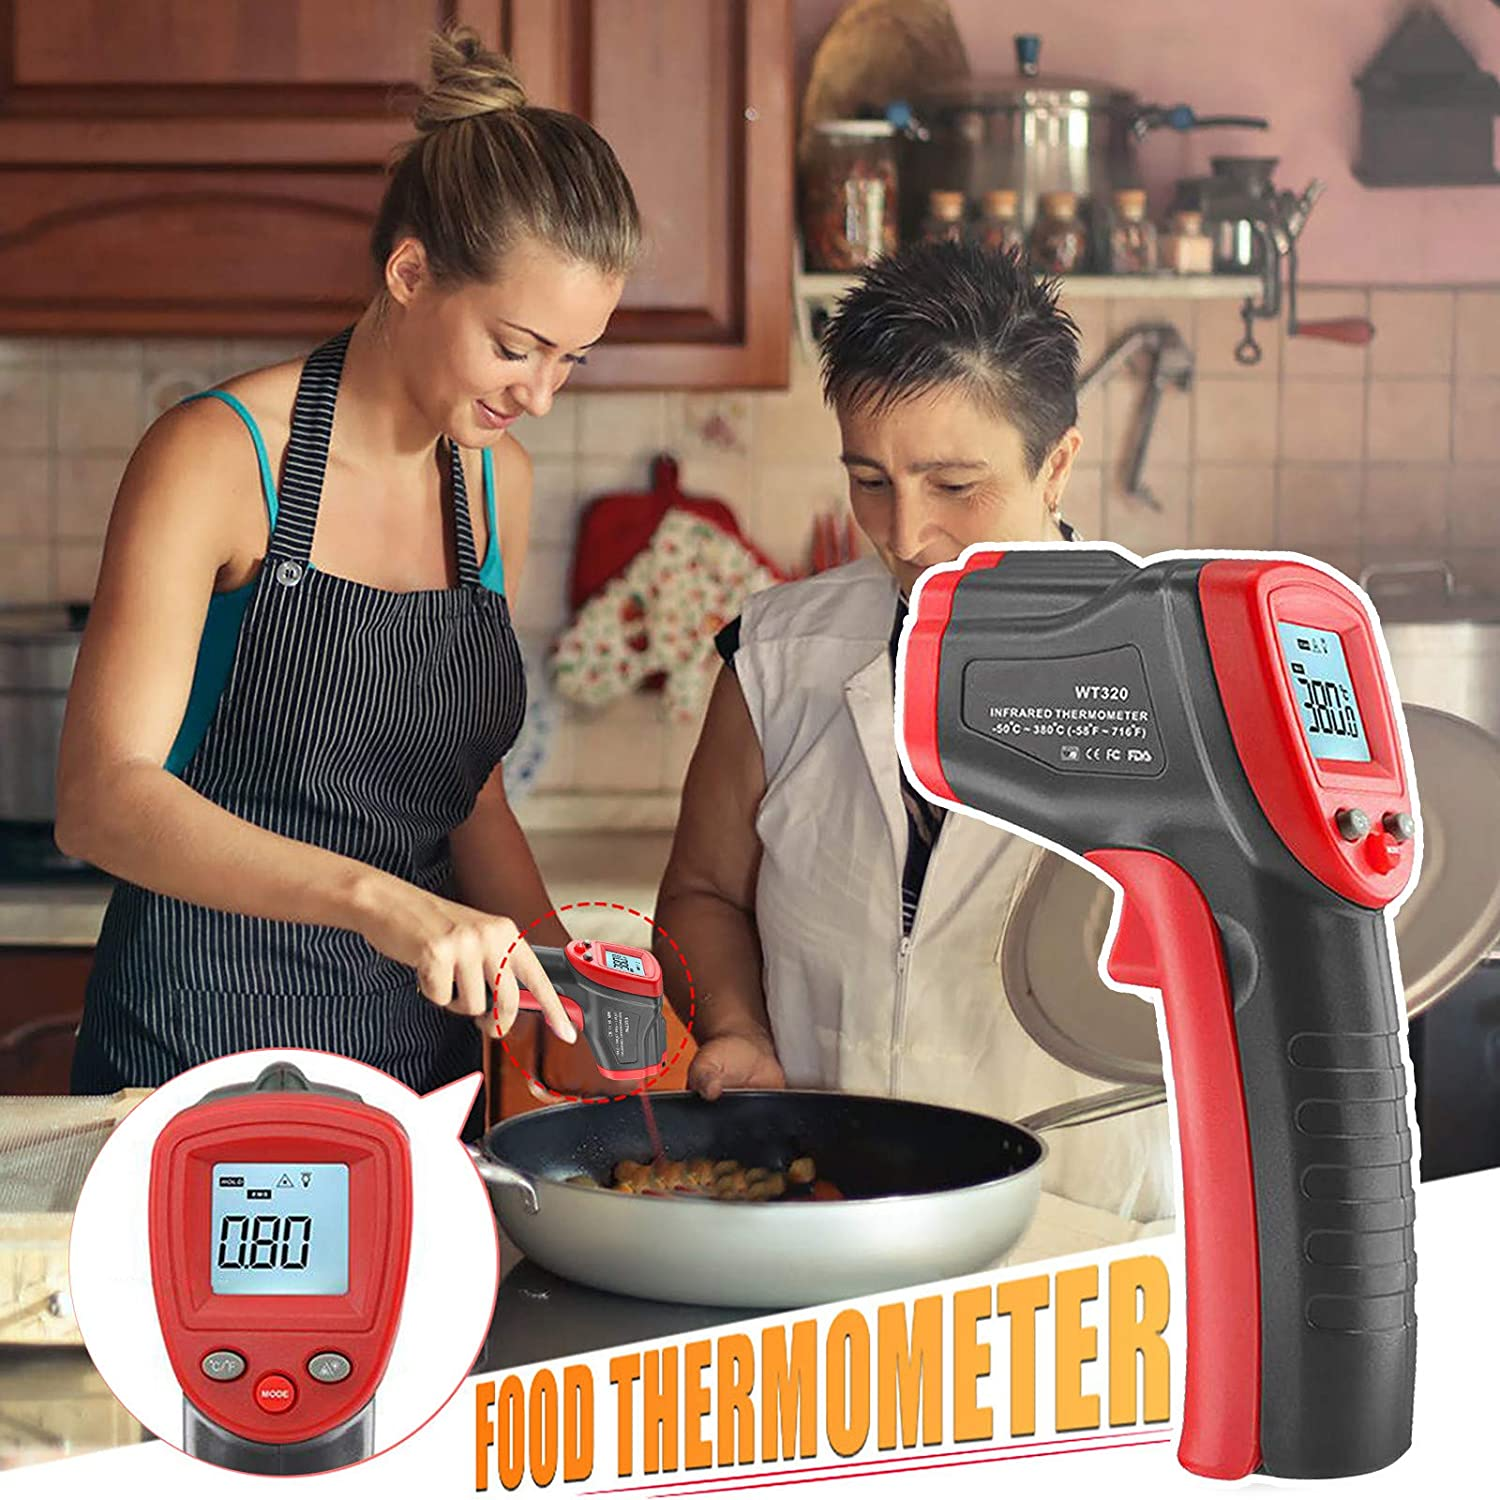 Uamaze High Precision Food Thermometer WAS £47.96 NOW £11.99 w/code SVBXFV95 @ Amazon